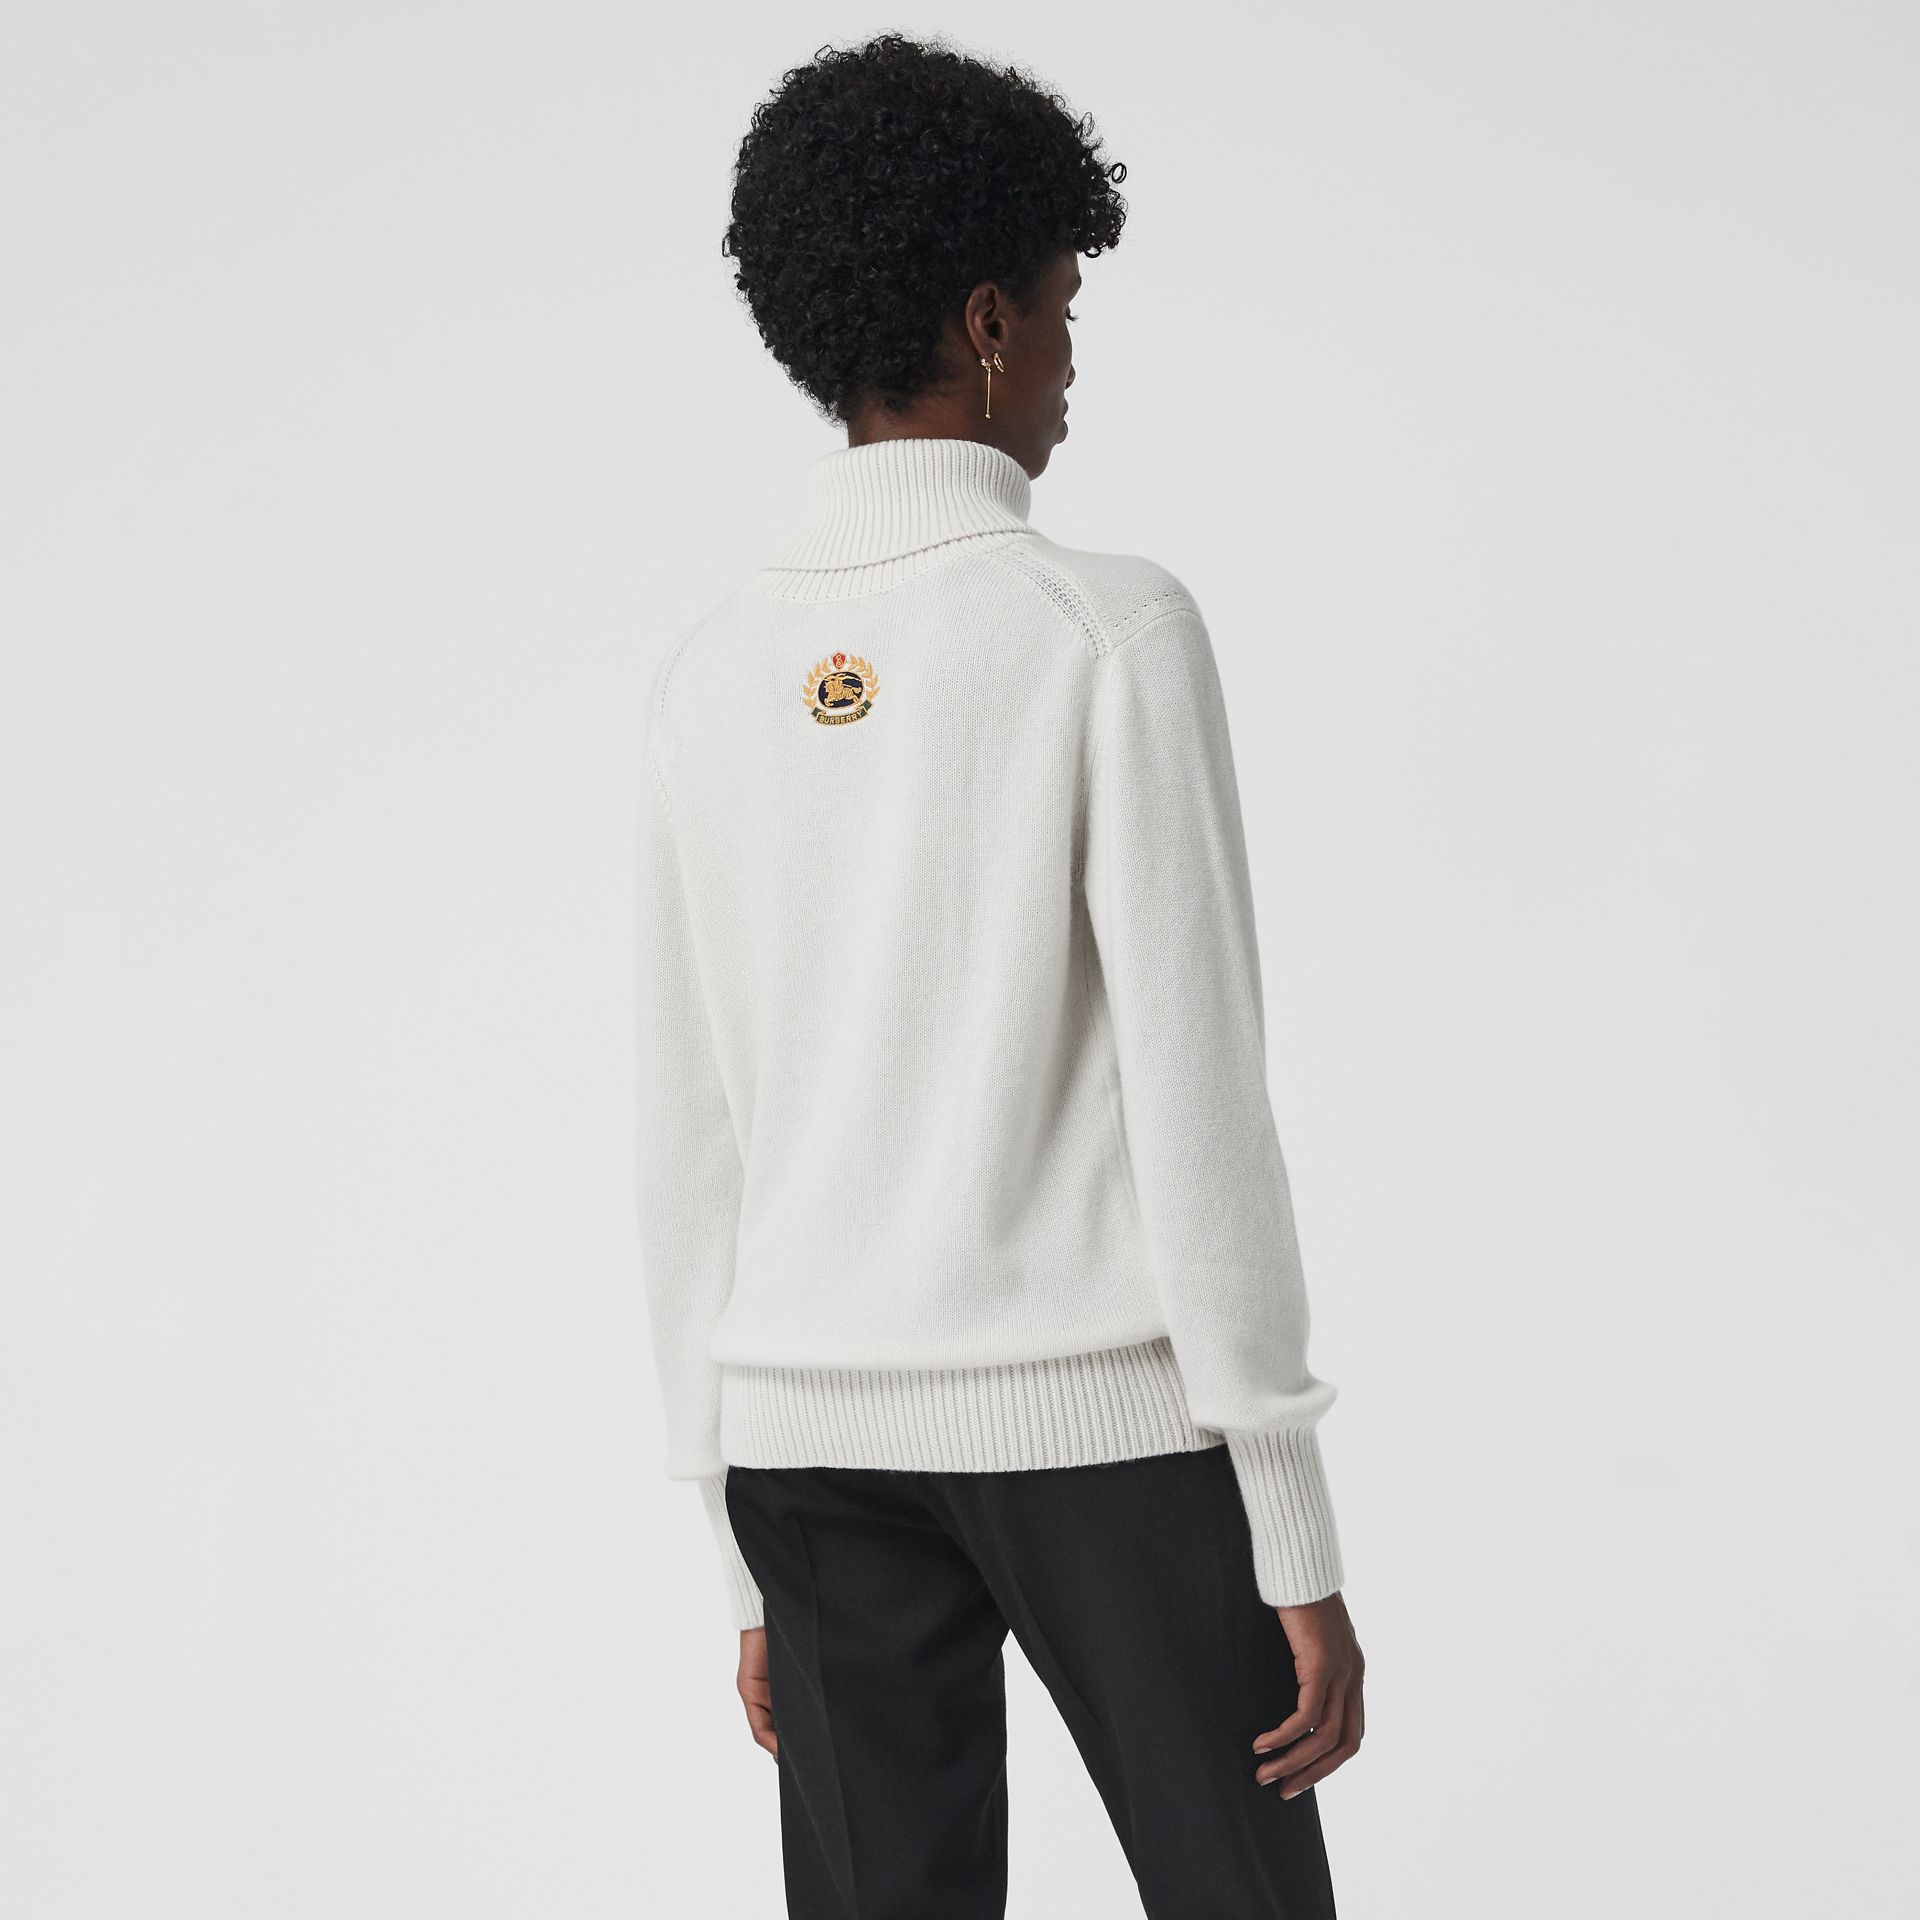 Embroidered Crest Cashmere Roll-neck Sweater in White - Women | Burberry Australia - gallery image 2